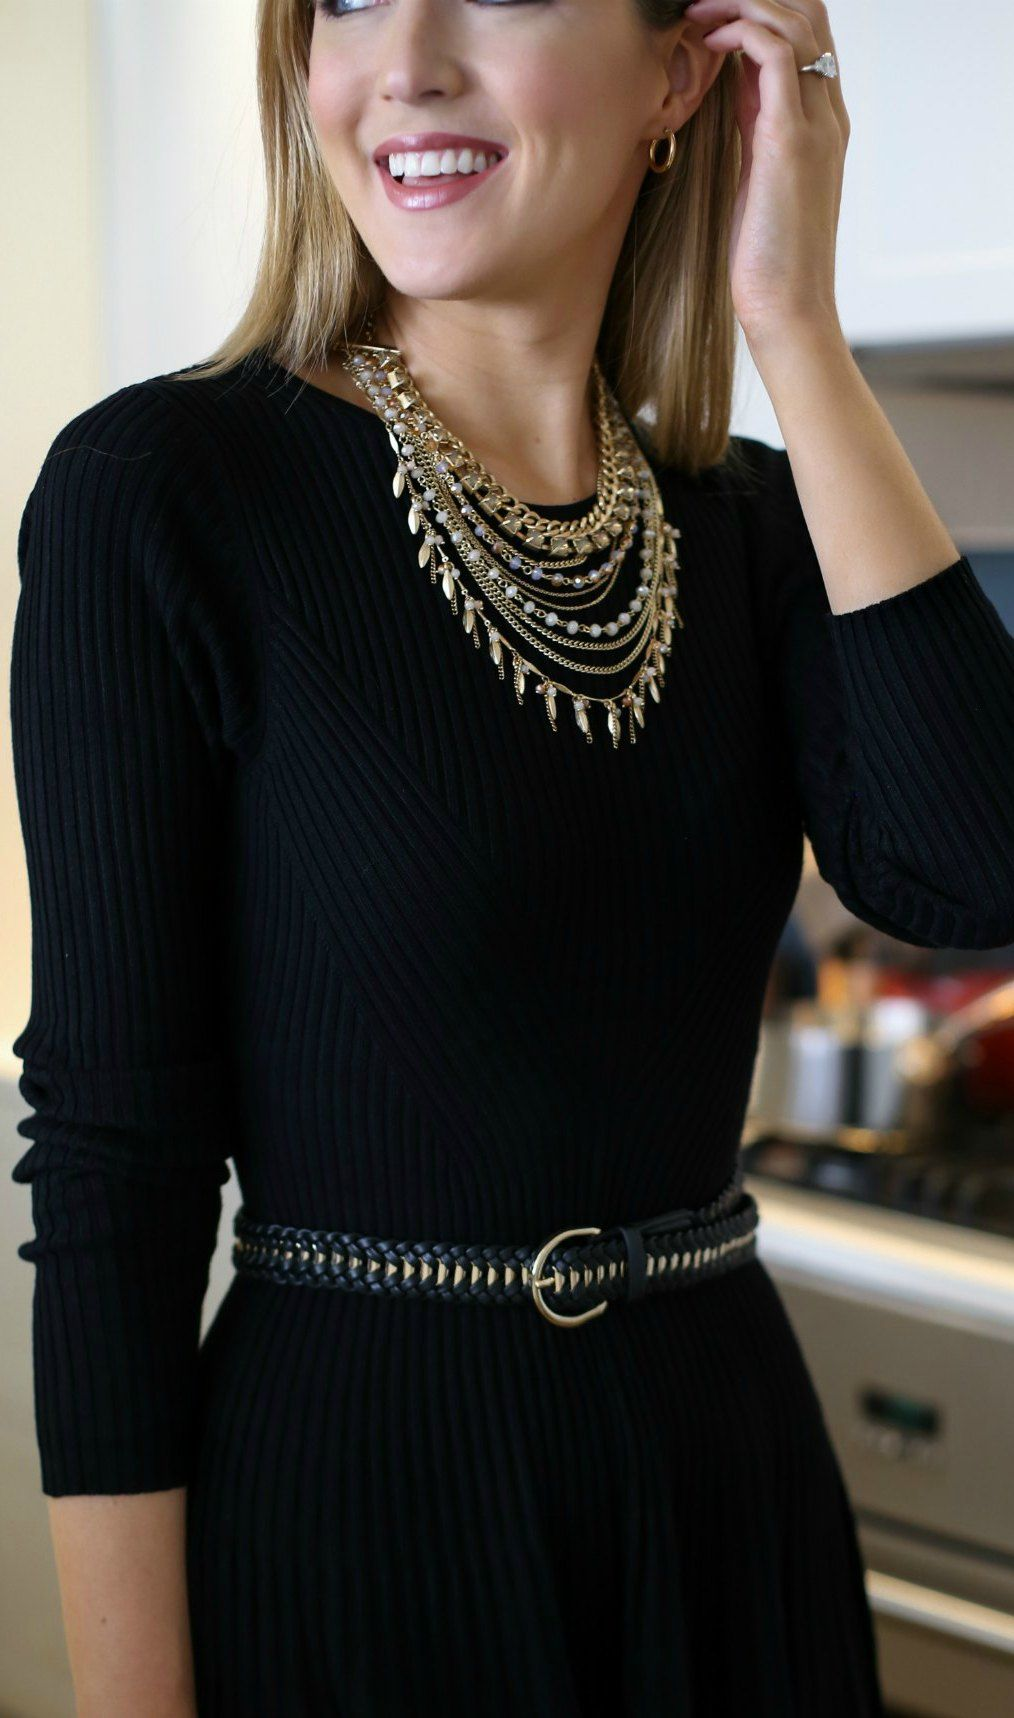 How To Dress Up A Simple Little Black Dress For The Holidays Layered Gold Dainty Statement Necklace Gold Blac Fashion Black Dresses Classy Knit Skater Dress [ 1718 x 1014 Pixel ]